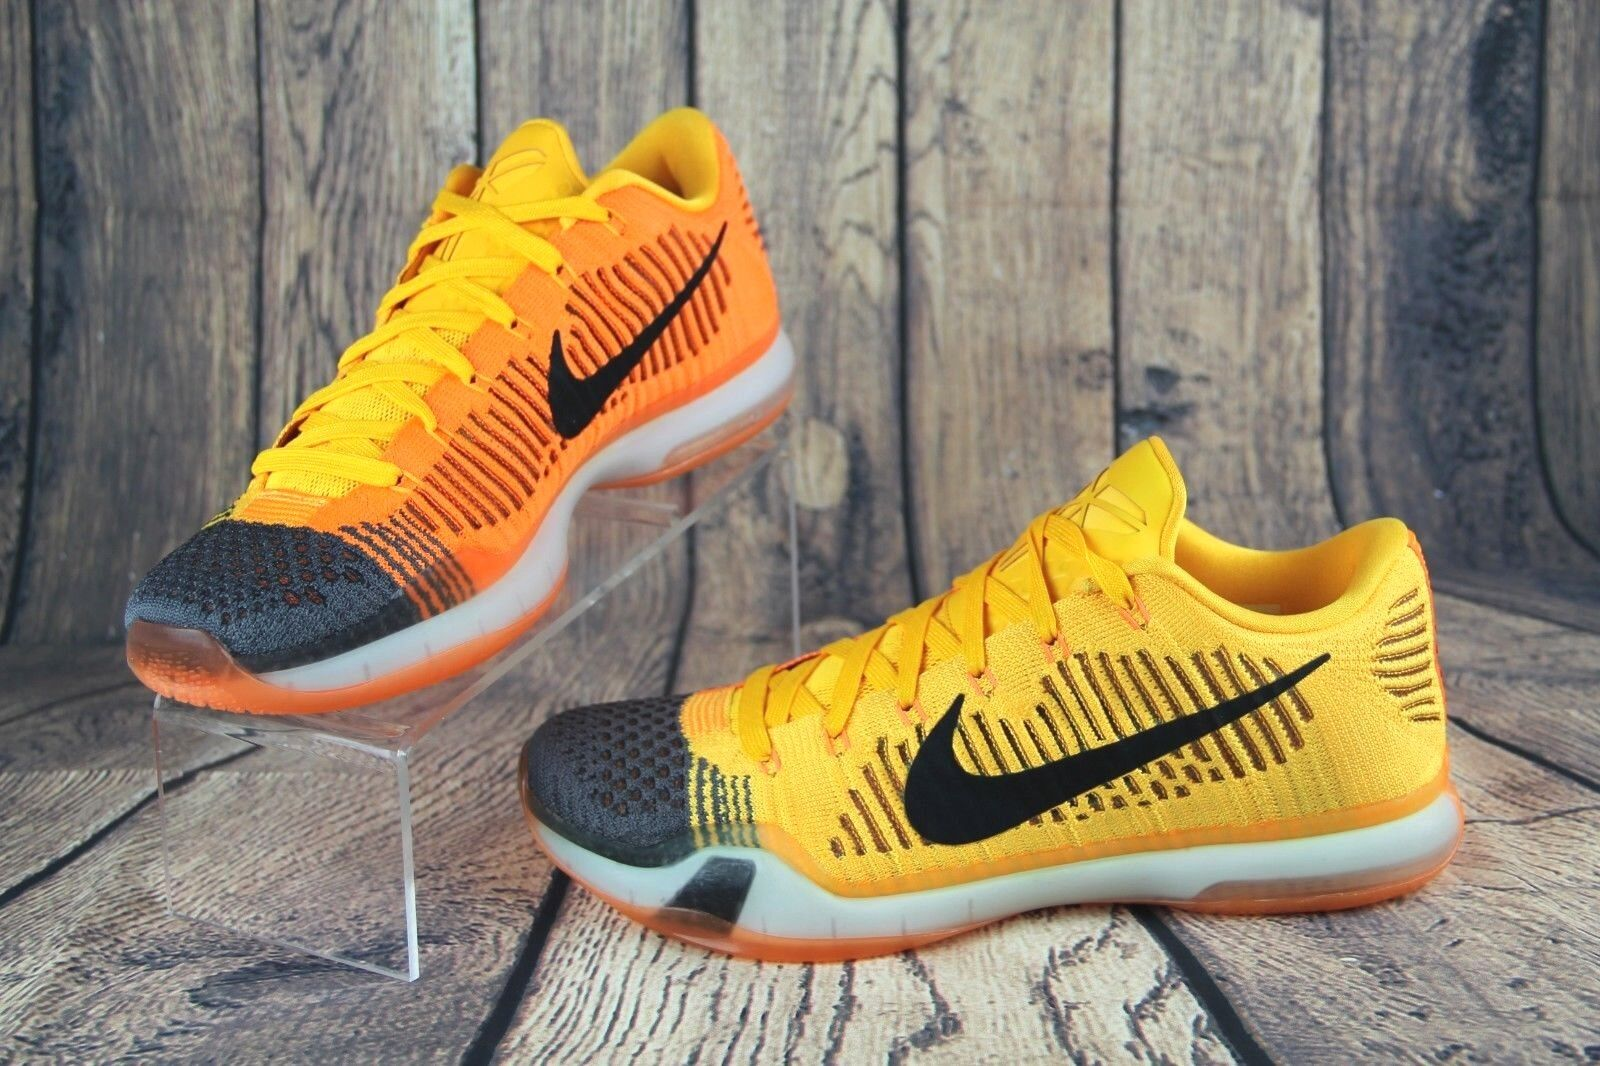 NIKE Kobe X Chester 10 Elite Low FlyKnit Chester X Cheetah Orange Sneaker 747212-818 SZ 10 6bf85c